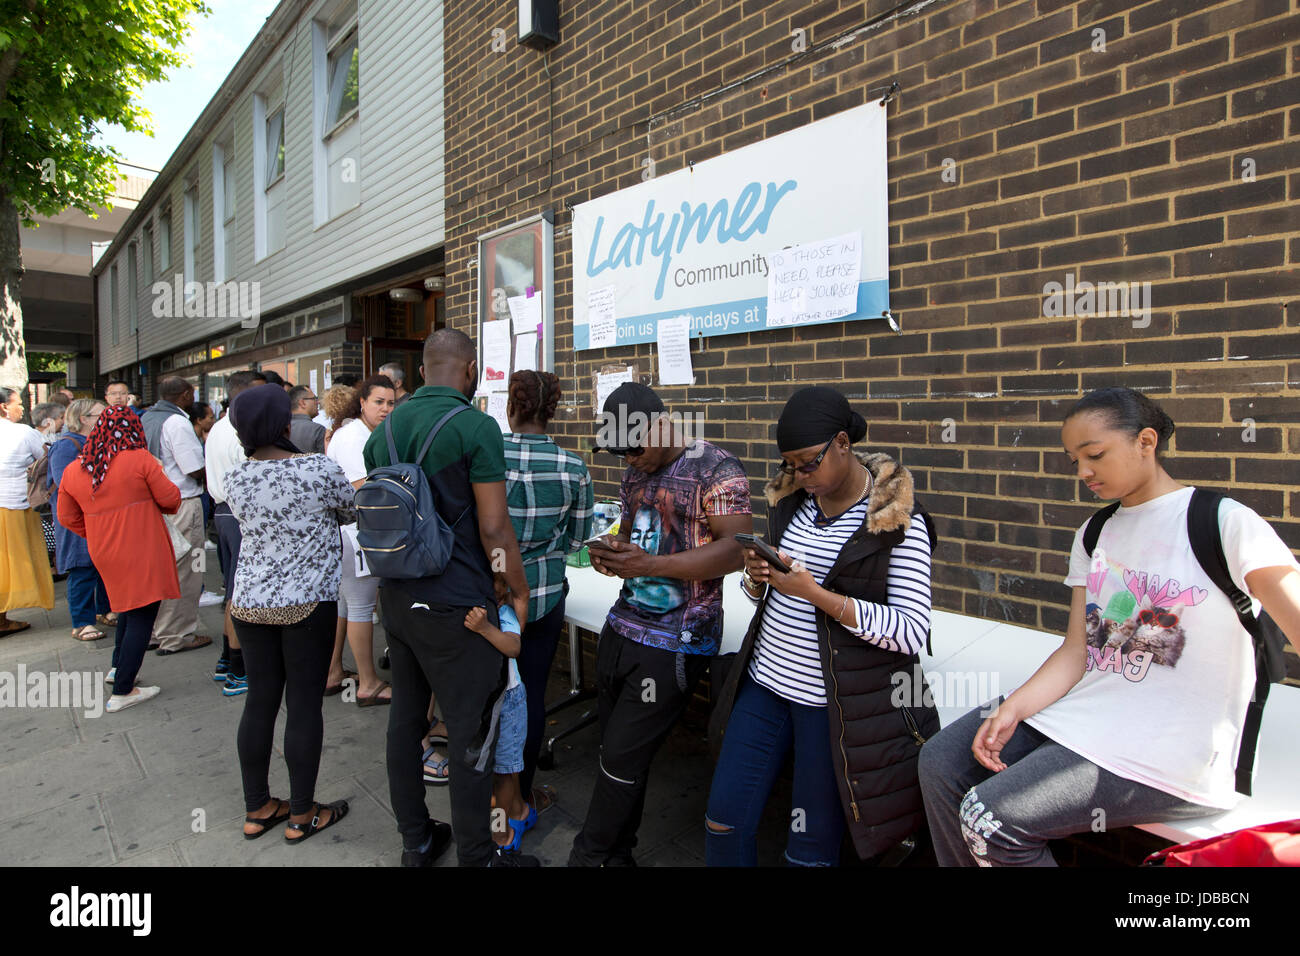 Grenfell Tower fire disaster, West London, UK - Stock Image